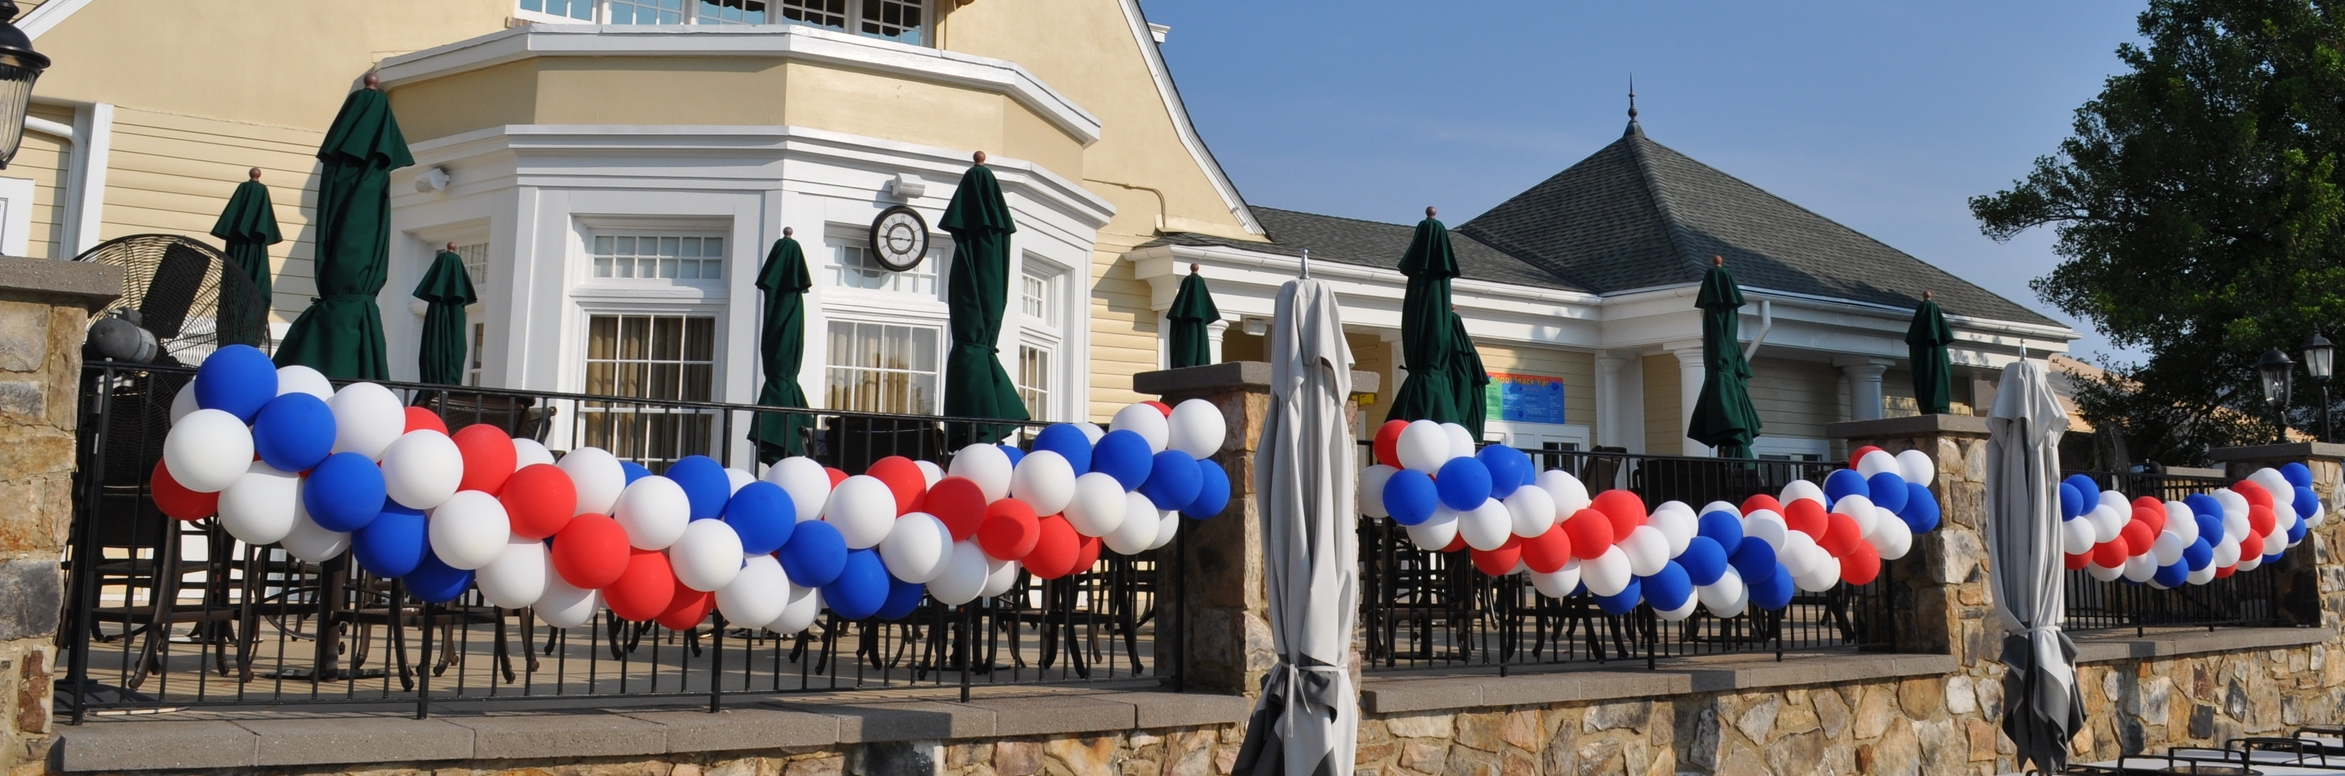 Independence Day Balcony Balloons